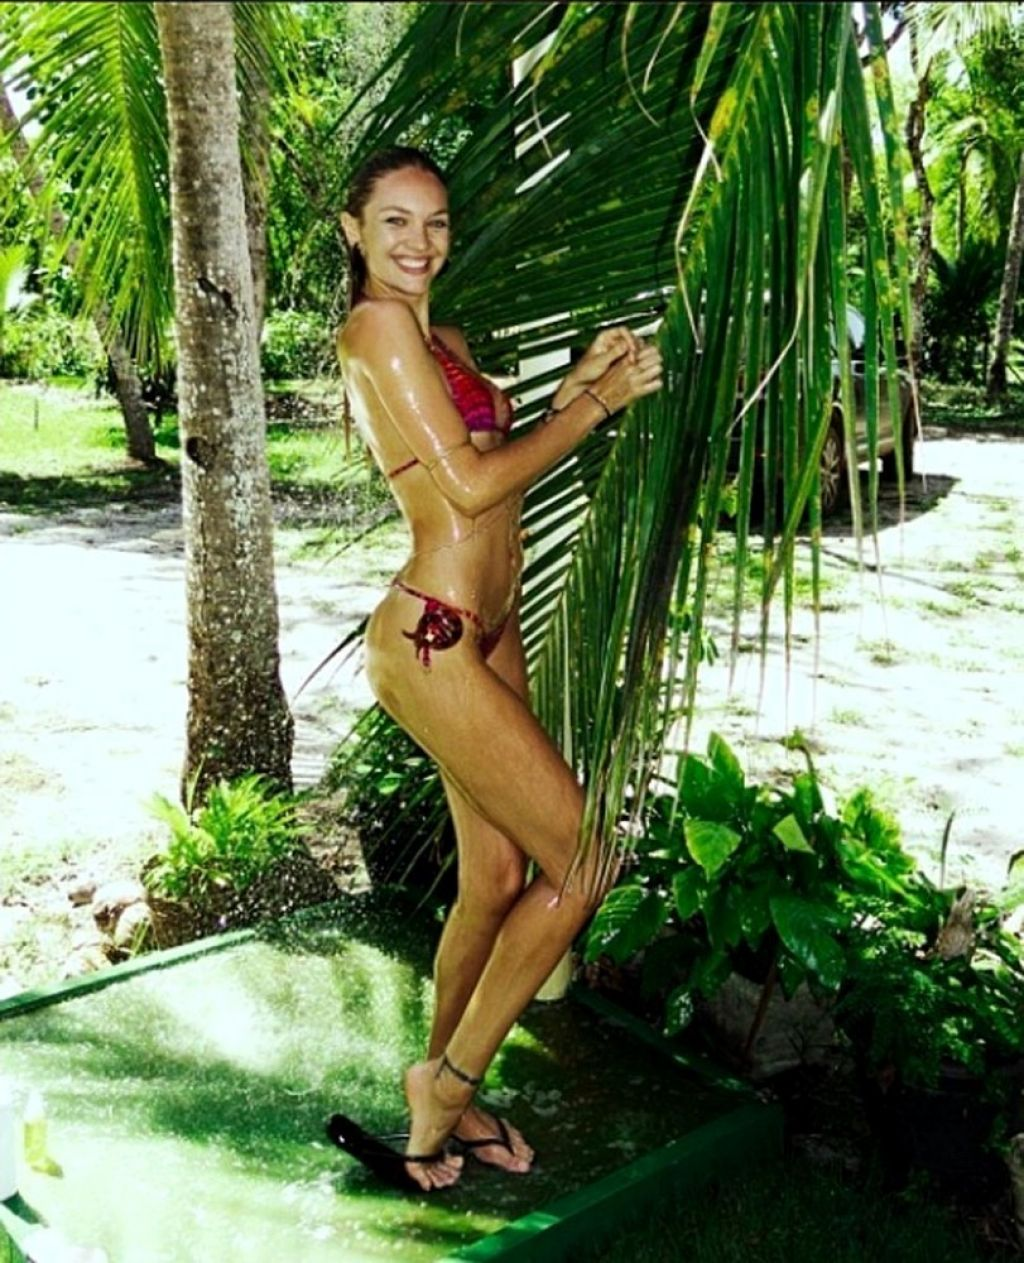 Candice Swanepoel Bikini Twitter Photo - February 2014